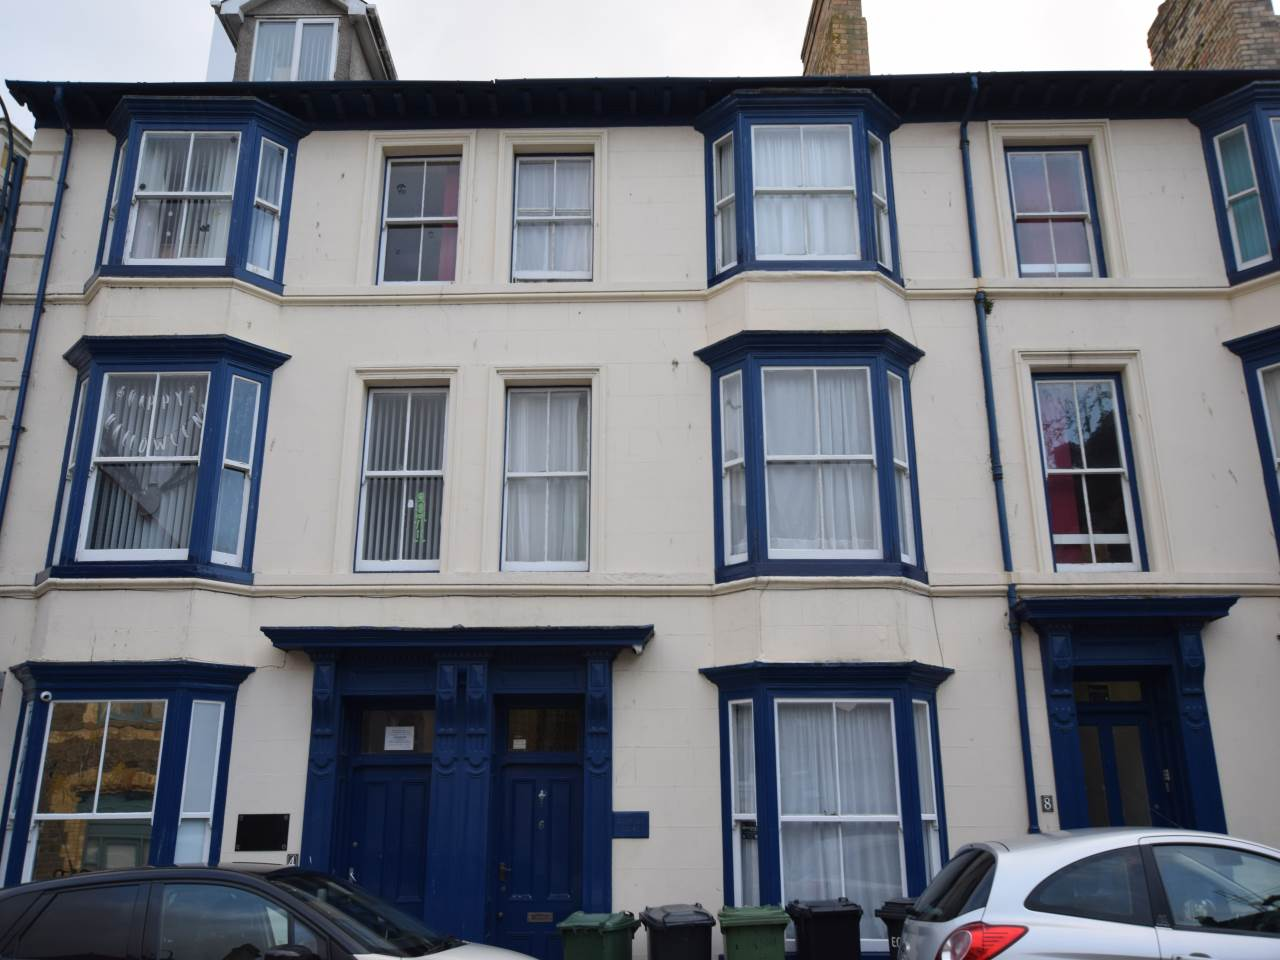 6 bed house to rent in Baker Street, Aberstwyth, SY23